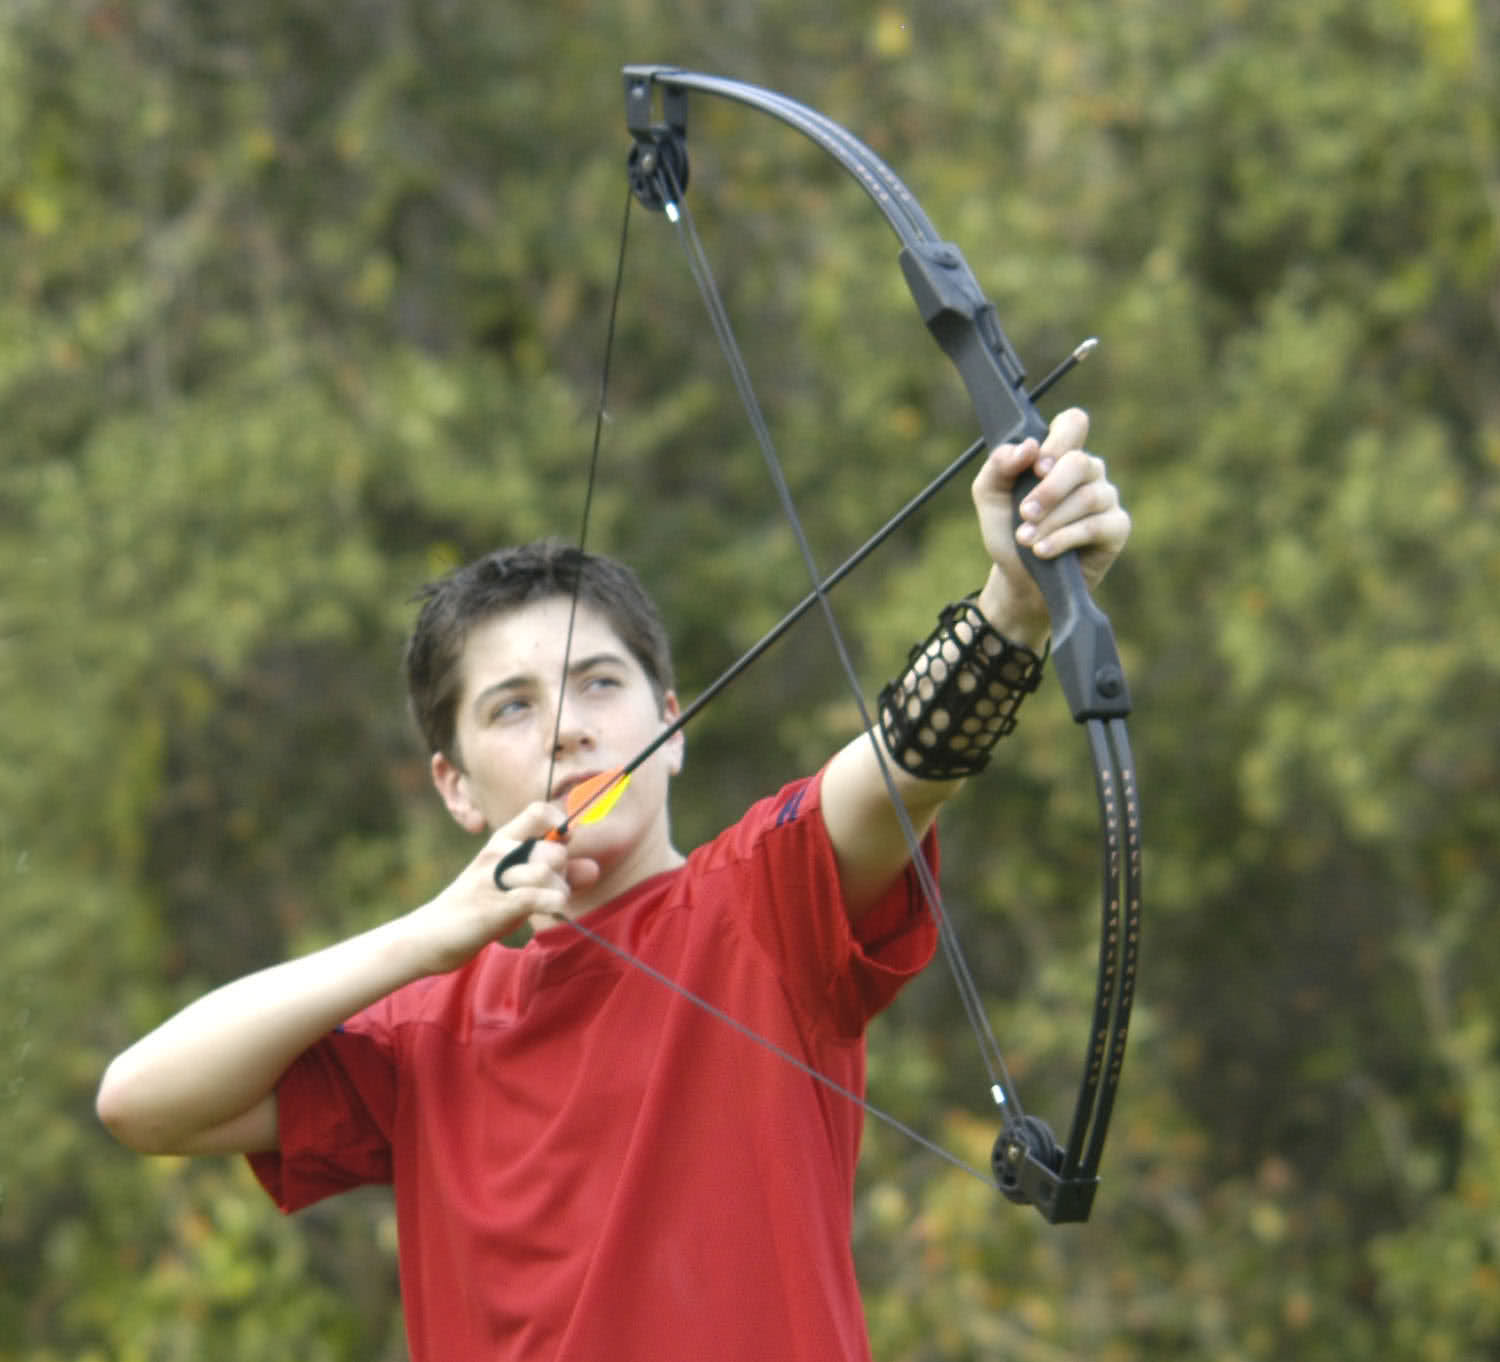 Lil Banshee Quality Compound Bow For The Young Archer